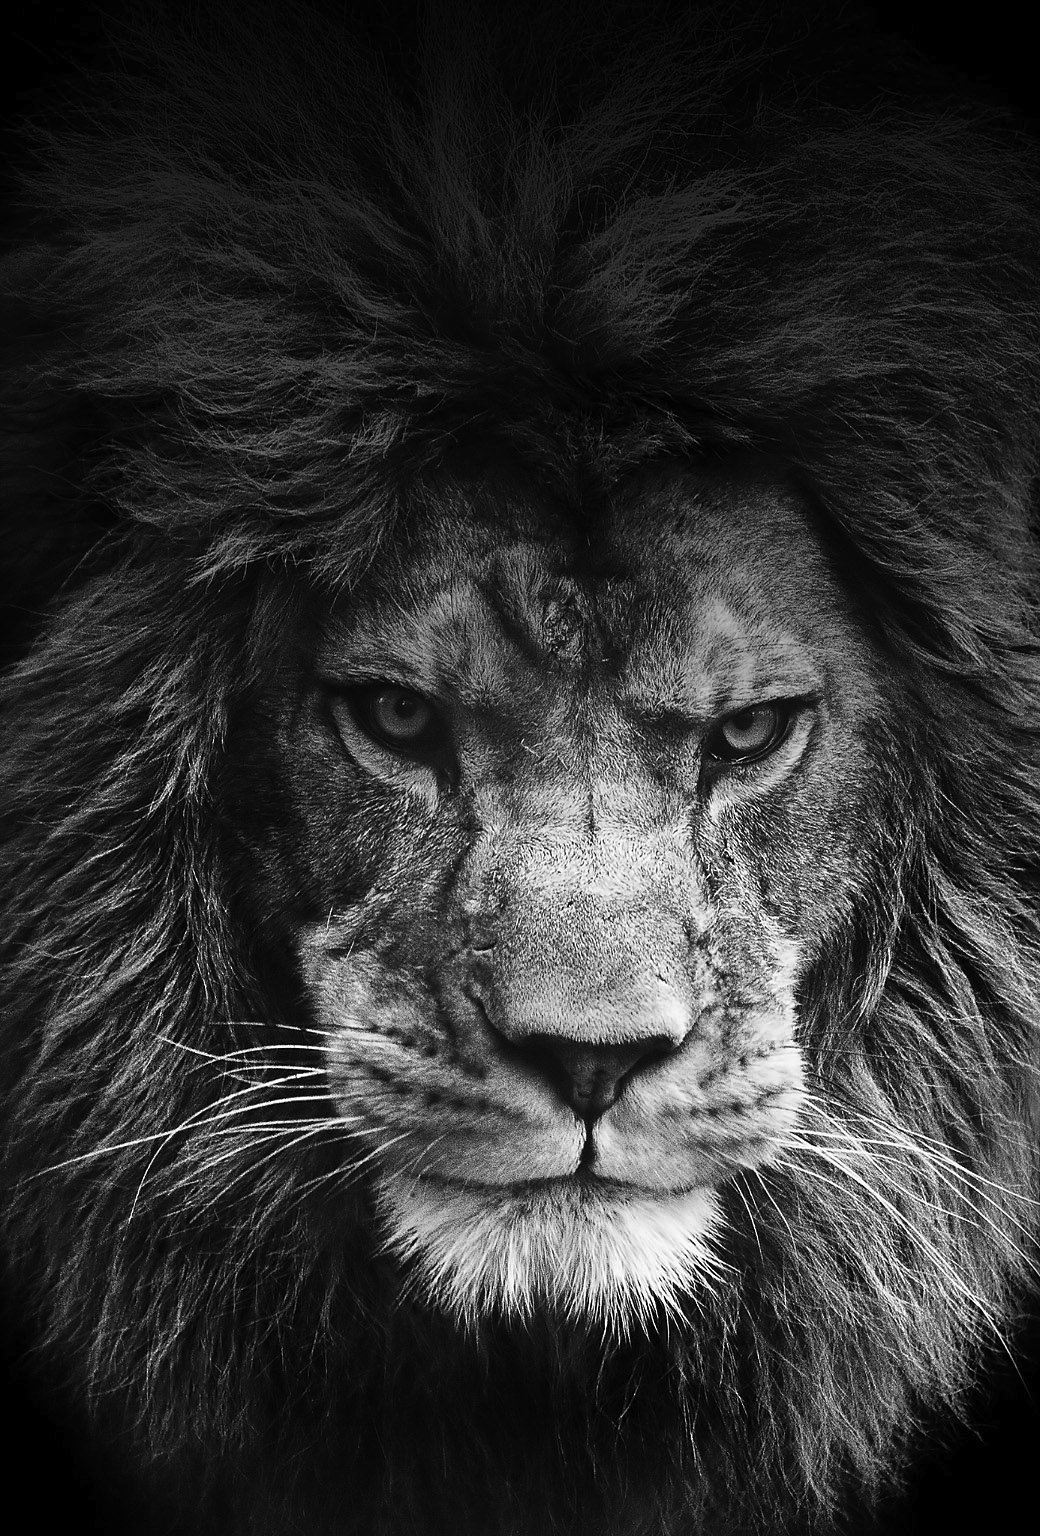 Free Download Lion Wallpapers For Iphone And Ipad 1040x1536 For